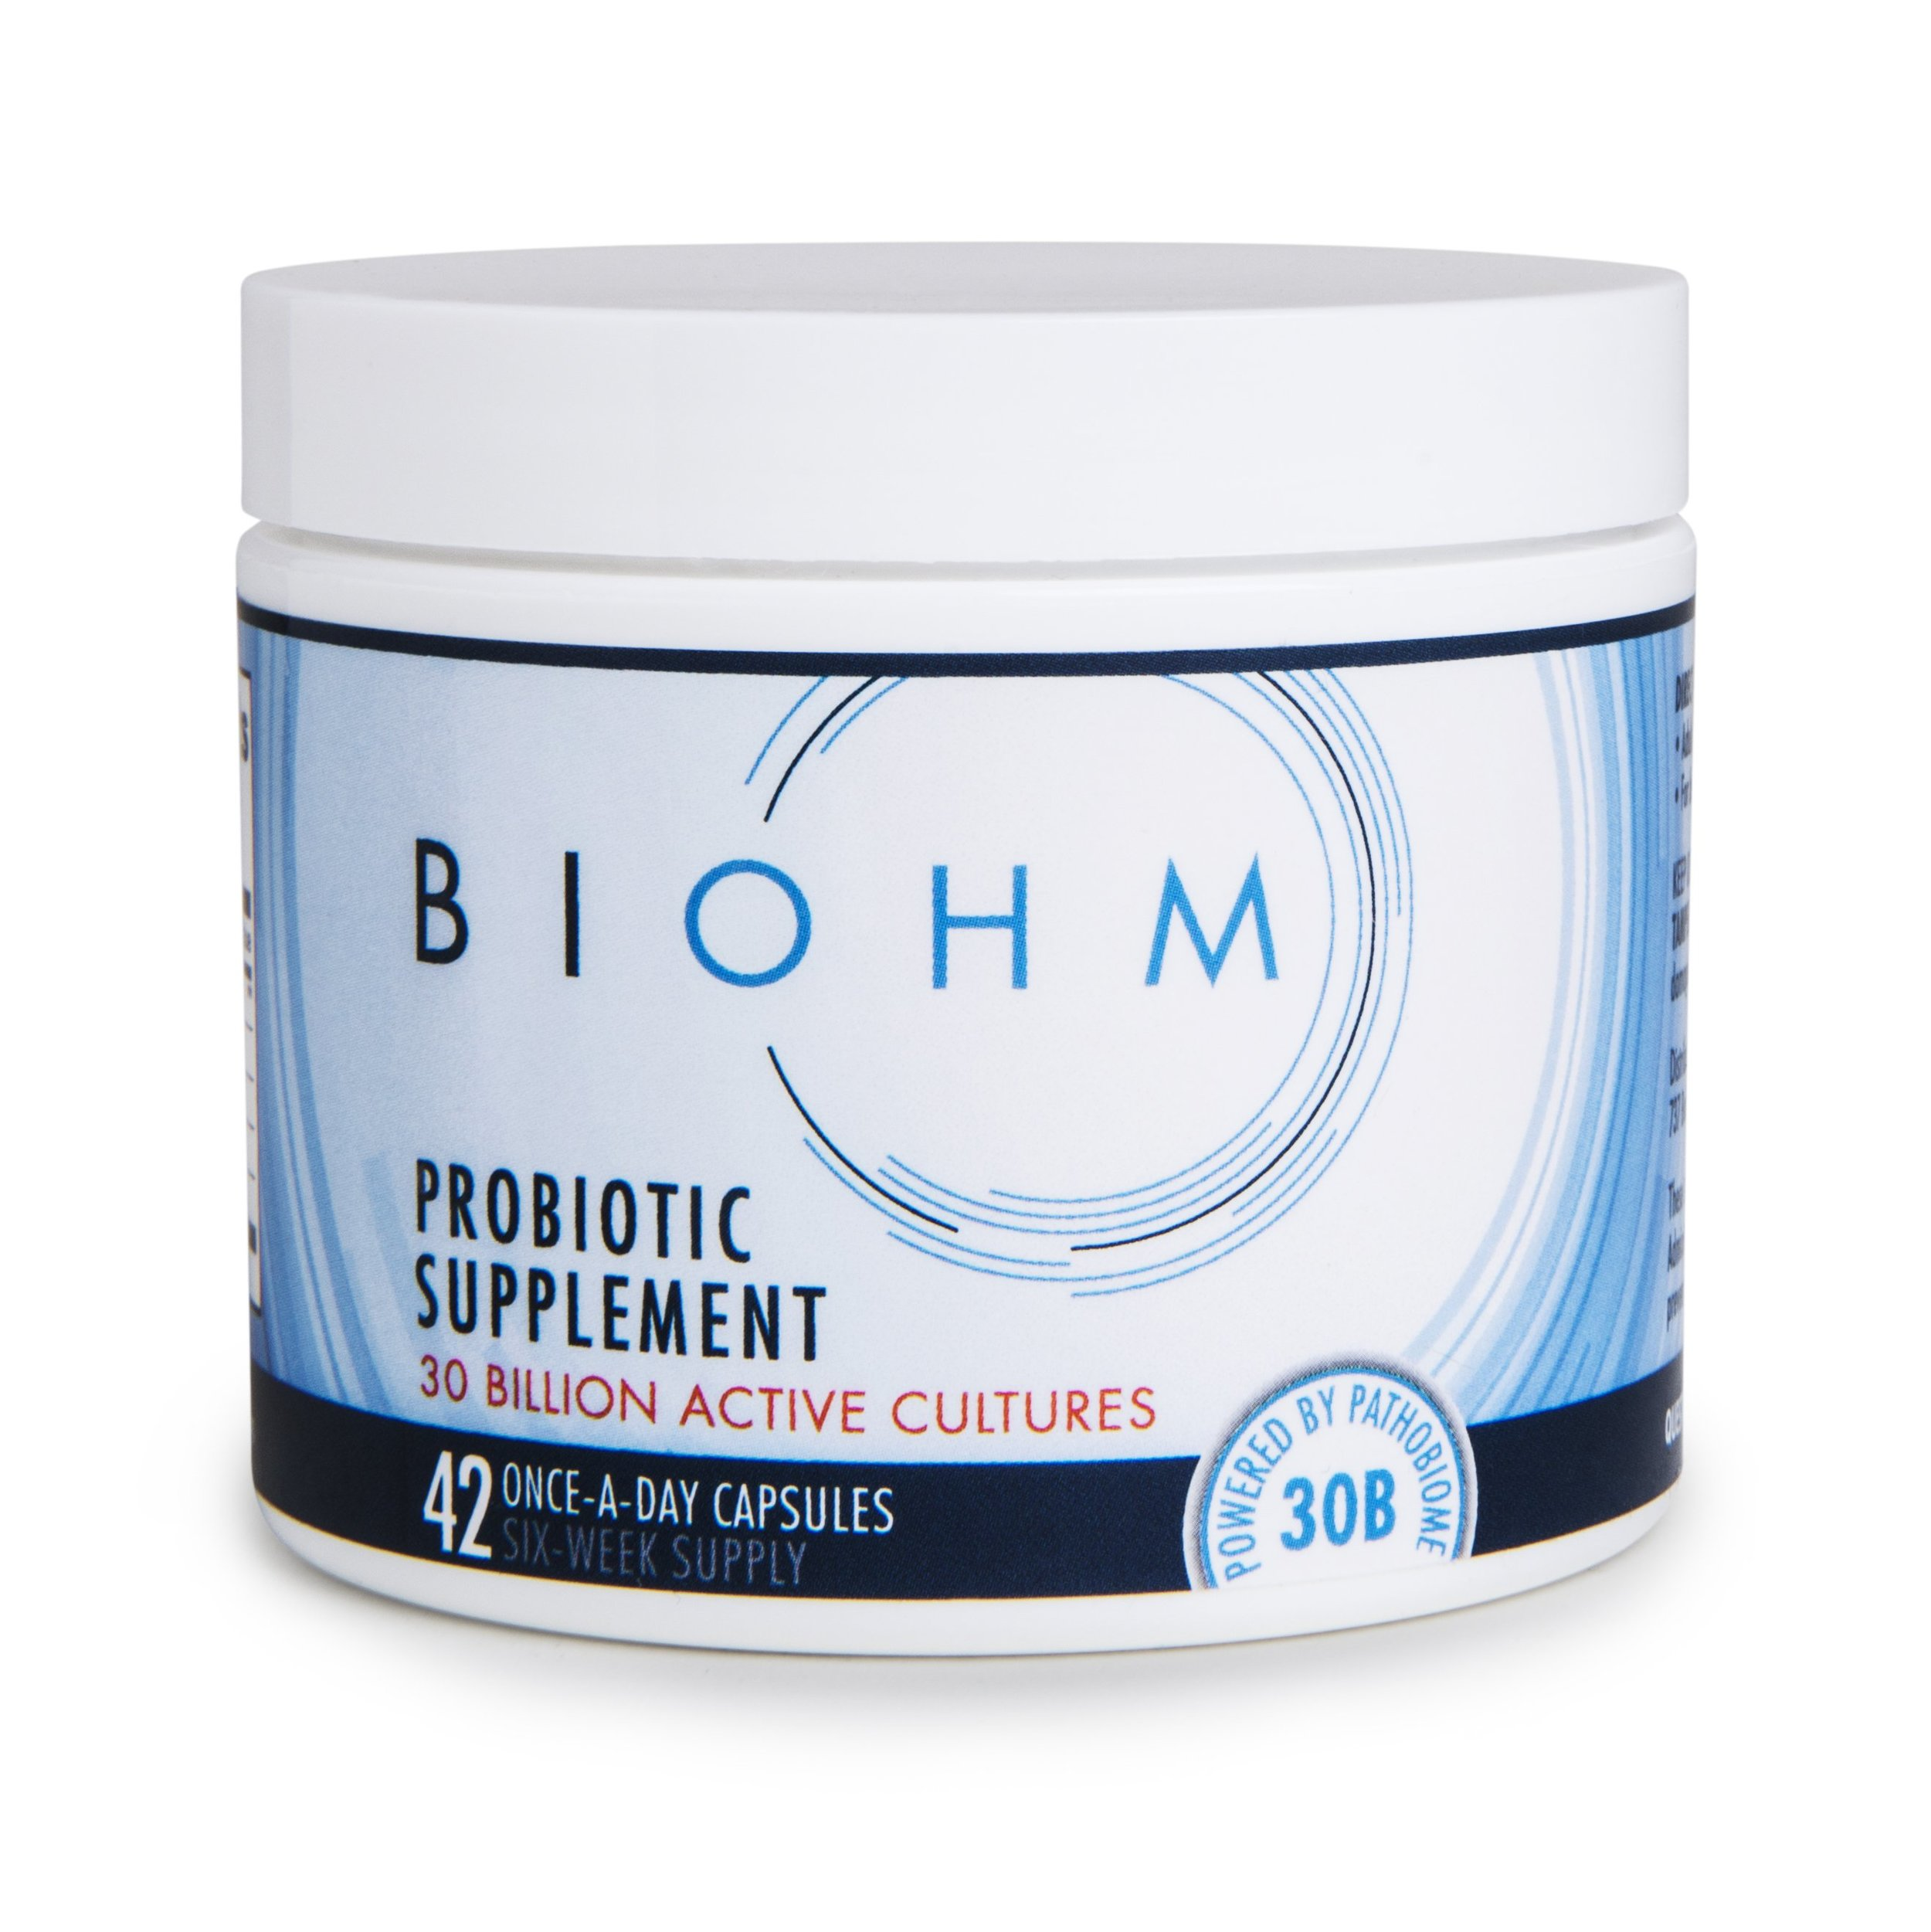 BIOHM  is my favorite probiotic supplement because not only do they contain bacteria and fungi, but also an enzyme to help break down biofilms, or digestive plaque, that may be inhibiting optimal gut health. Use code Carley20 for a special discount when you order!